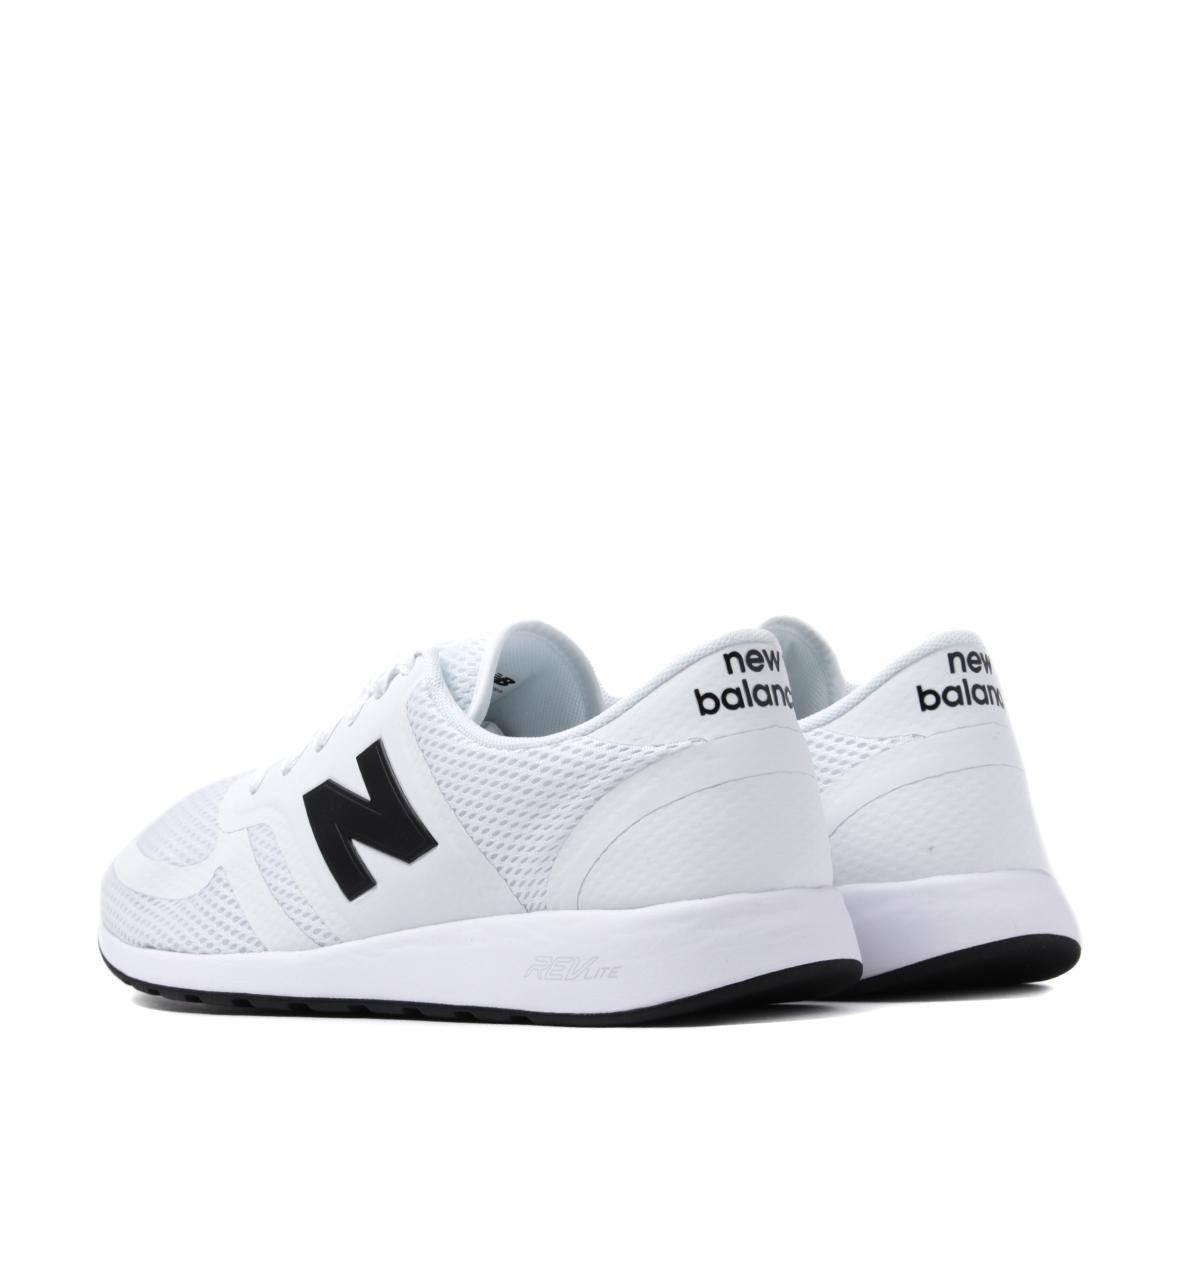 Lyst New Balance 420 White Mesh Trainers in White for Men